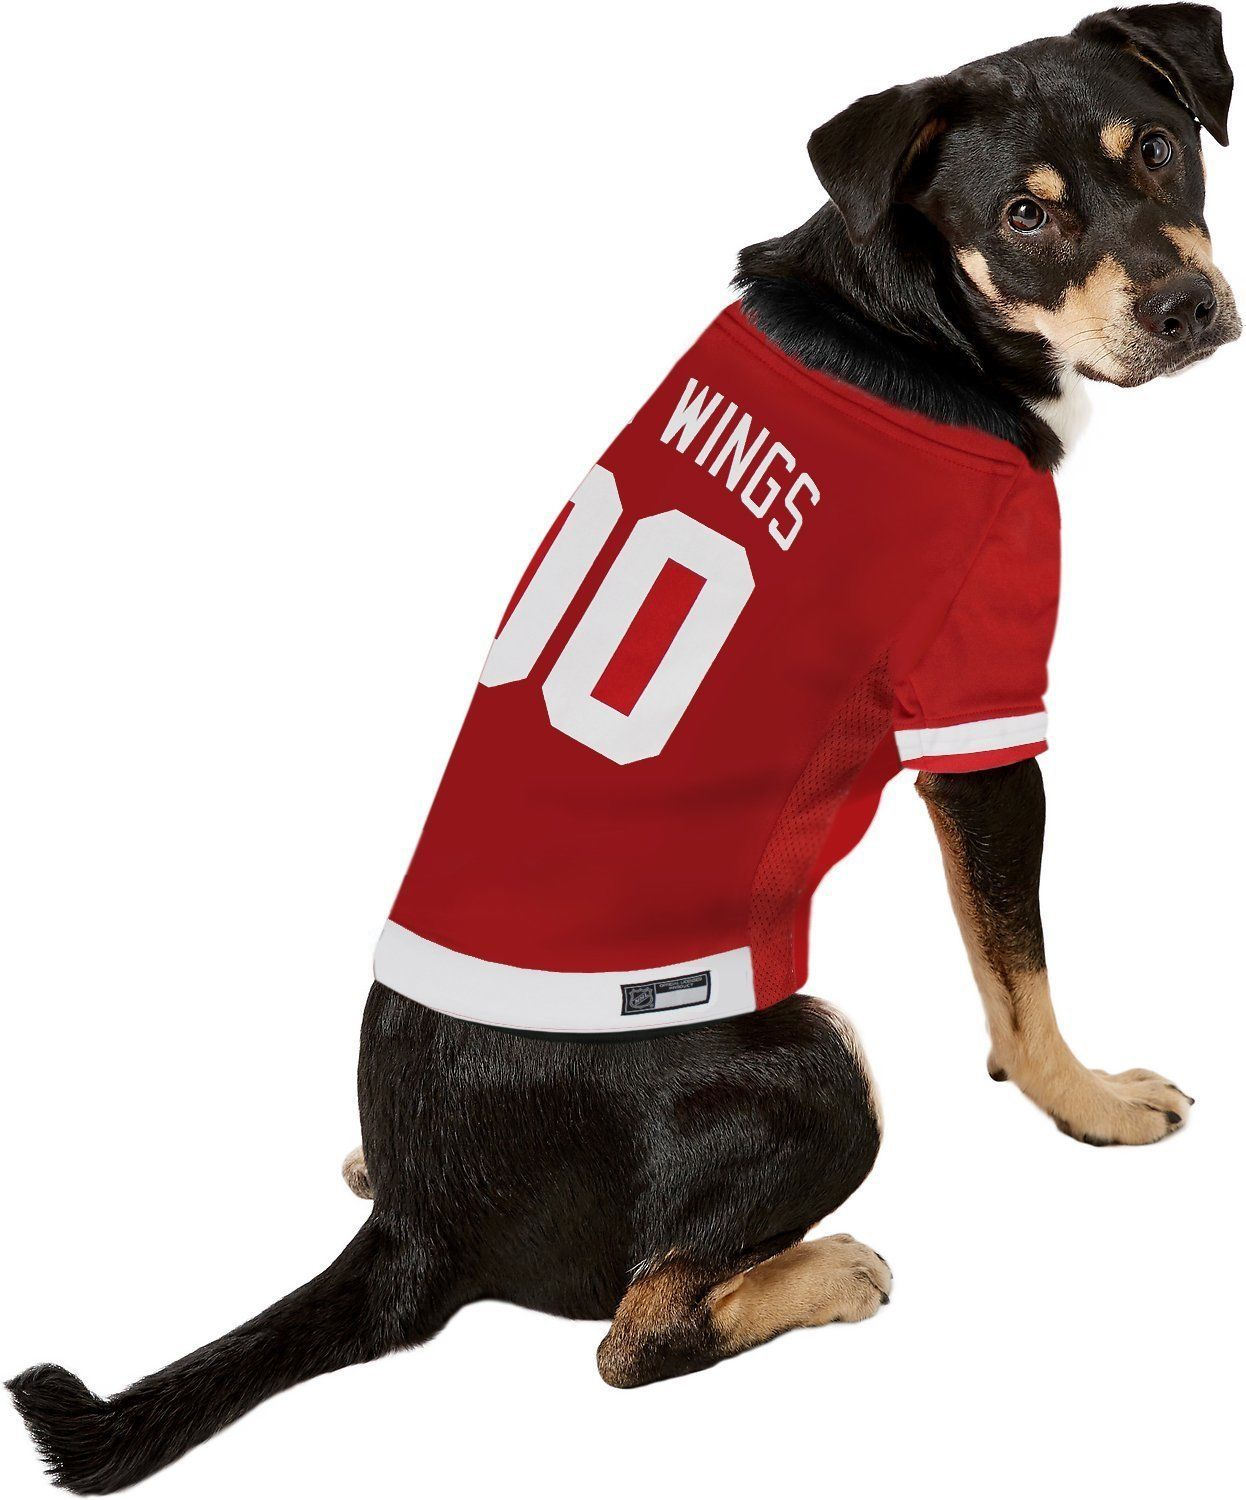 quality design 8e6c0 2b59f red wings dog jersey